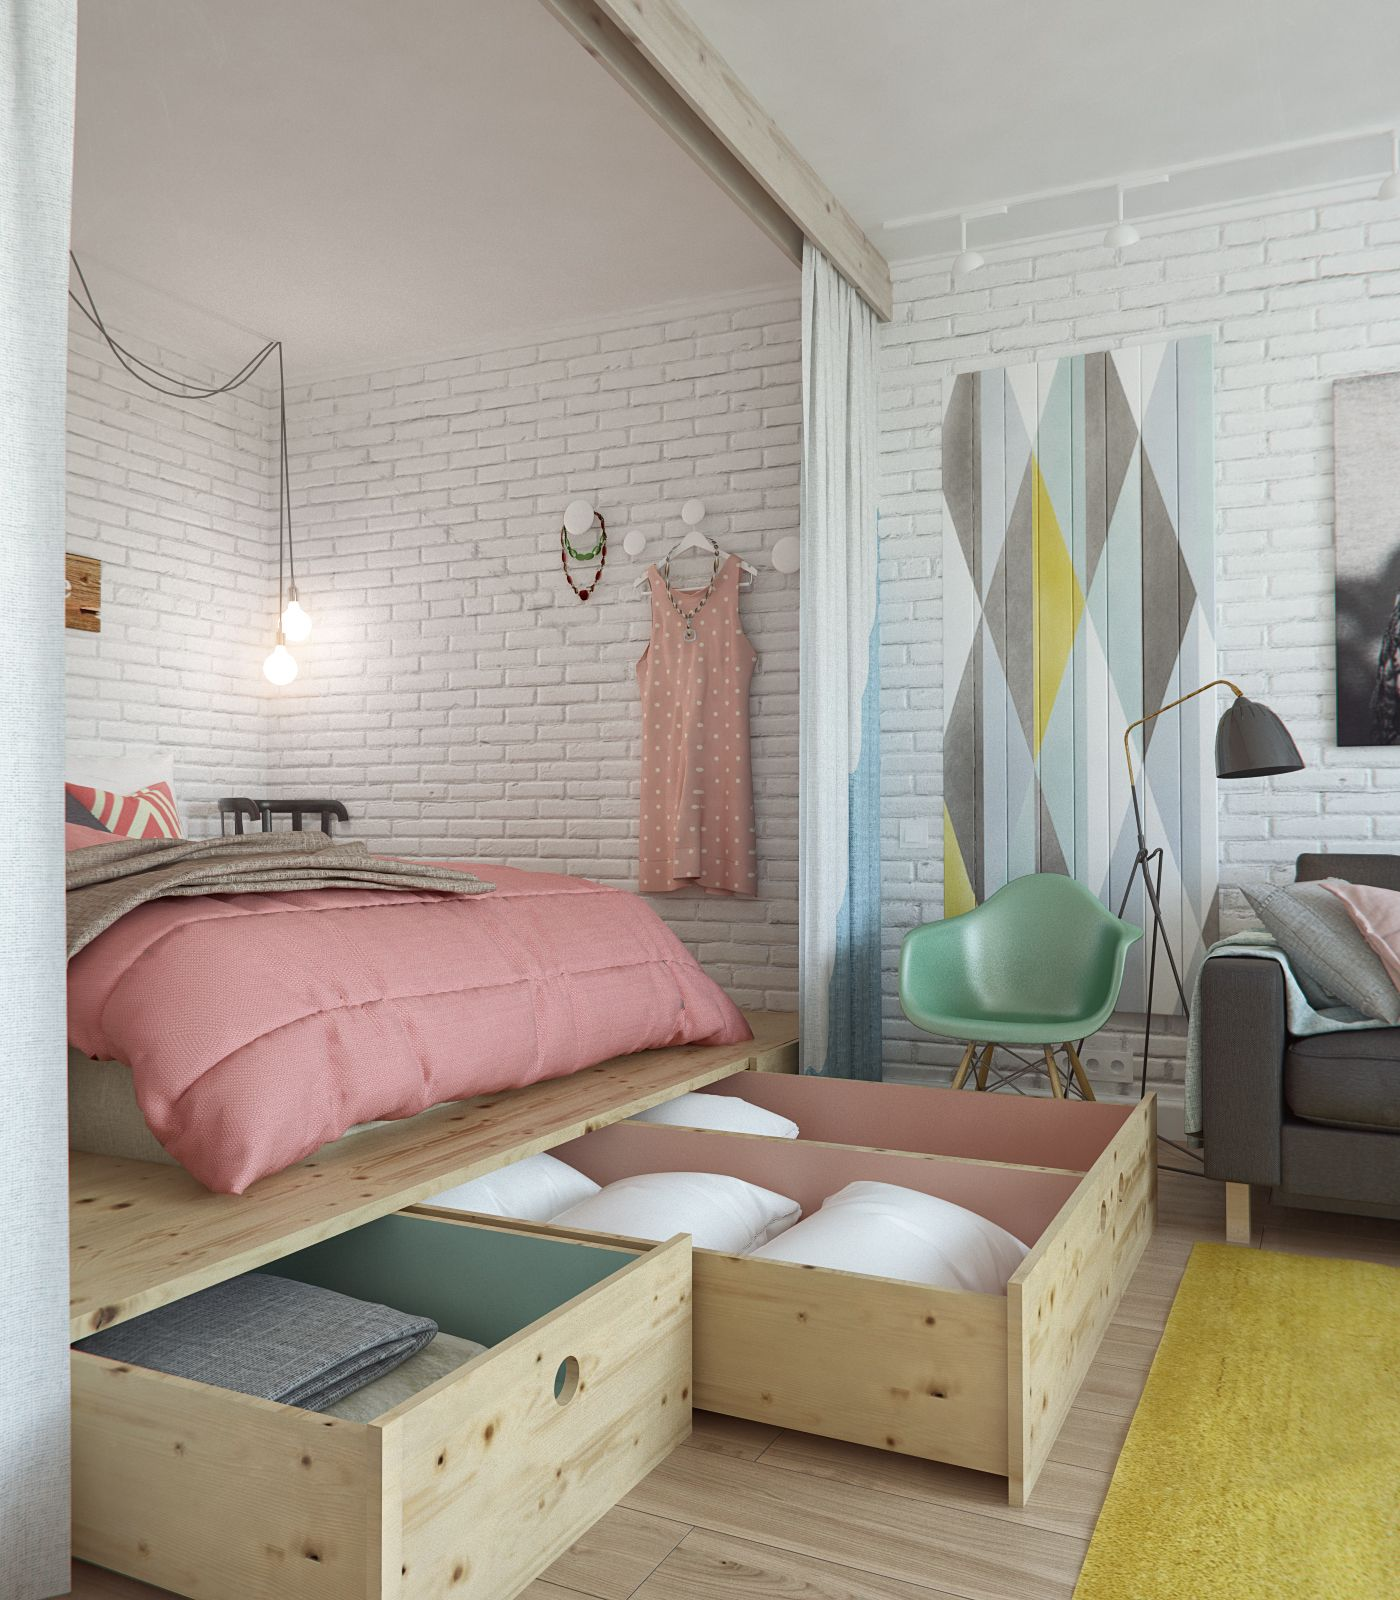 4-bedroom-home-design-with-secret-storage-container-for-bedroom-with-wooden-pull-out-container